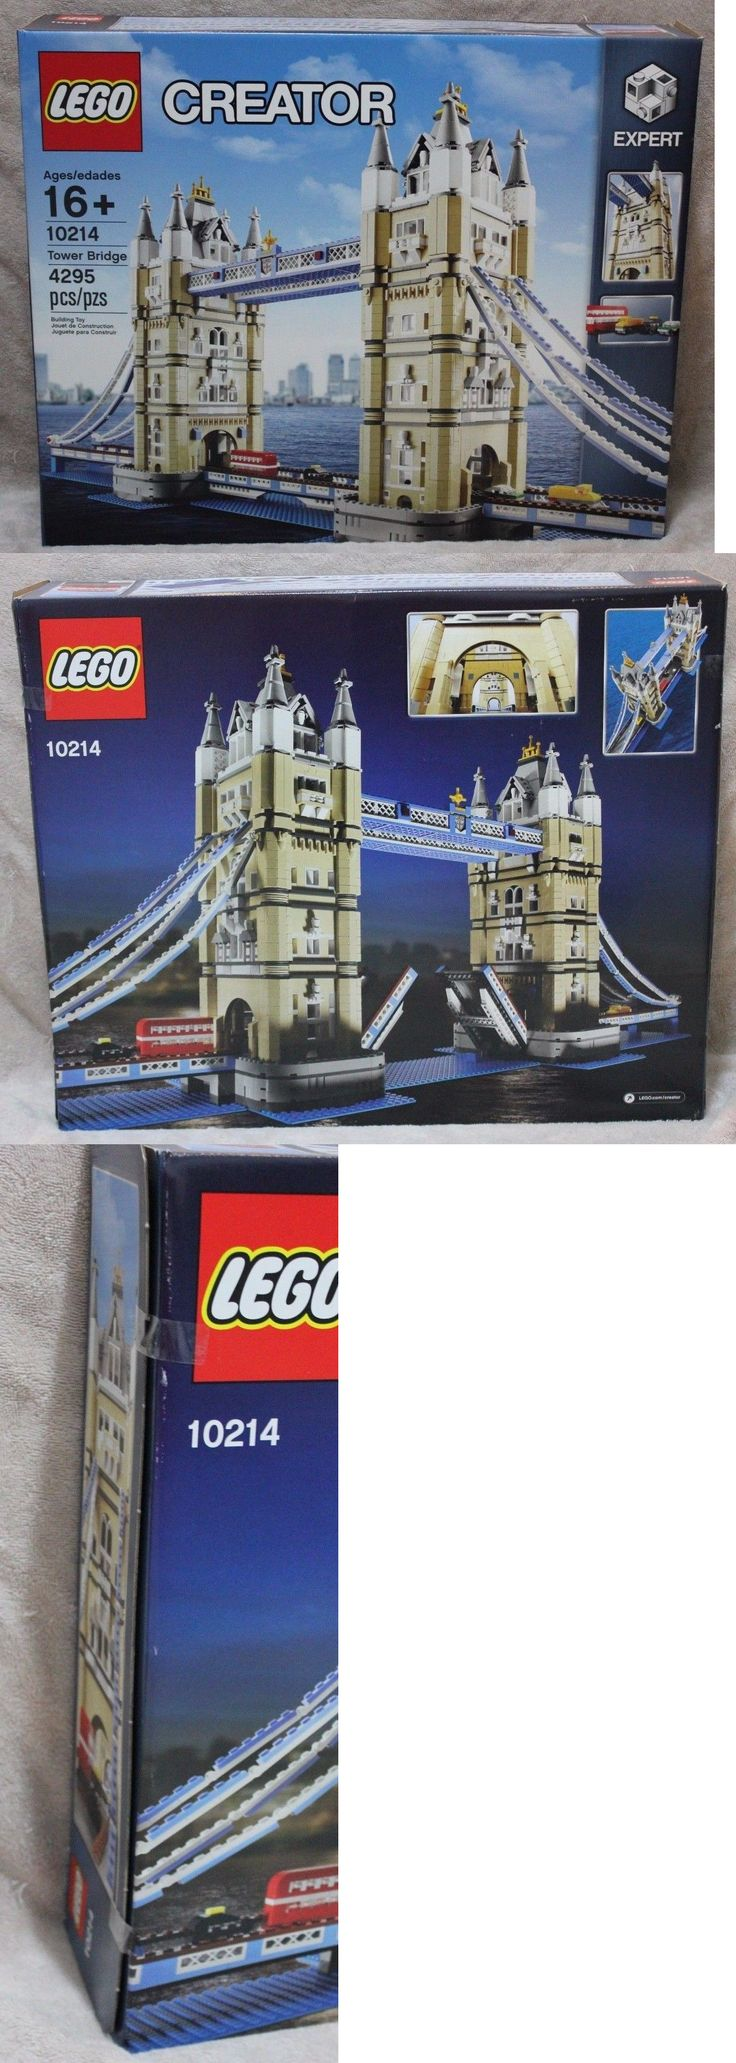 LEGO Complete Sets and Packs 19006: New Tower Bridge 4287 Pieces Lego 10214 Factory Sealed -> BUY IT NOW ONLY: $224.99 on eBay!